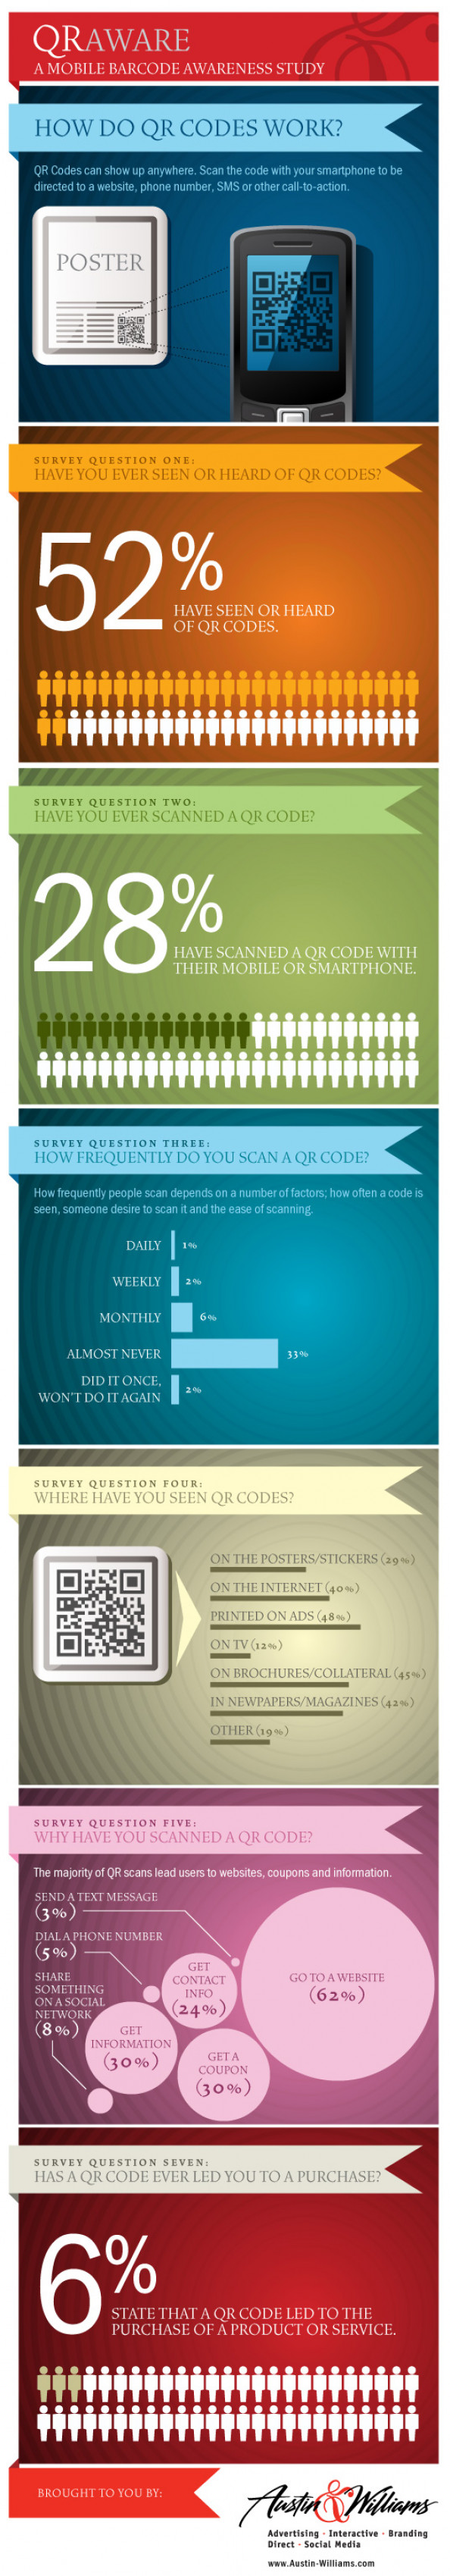 QR Aware: A Mobile Barcode Awareness Study Infographic